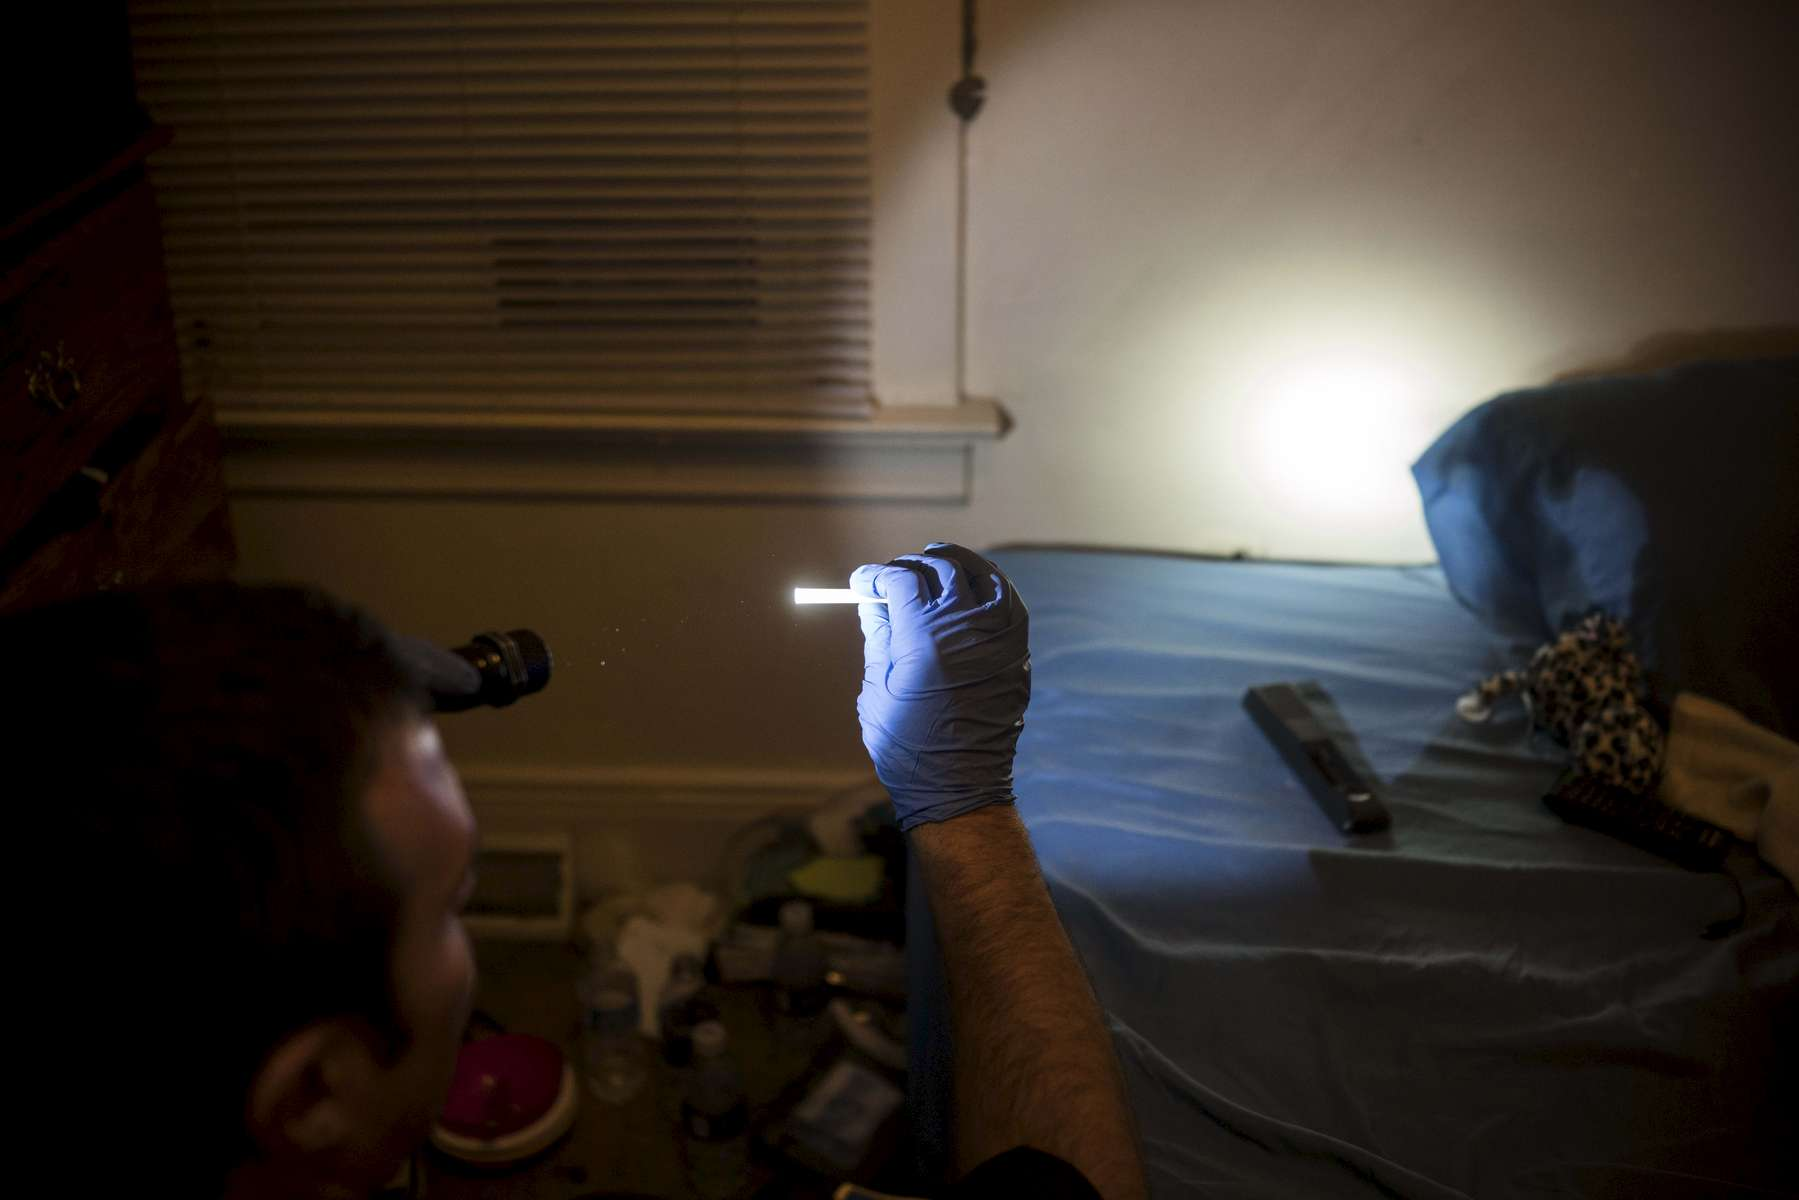 """East Liverpool, OH - October 8, 2016: An East Liverpool police officer holds up a drug pipe after searching through a teenager's room. The teen's mother called the police after her daughter vandalized her car. She asked and invited the police officer into her home, to search her daughters room and take out whatever drugs he found. She said """"Im tired of her using and I don't know what to do about it…. Just take it all.."""" The officer went into the girls room, searching for drug paraphernalia - pipes, bottle caps filled with water, burnt and missing spoons (the mother complained that all her spoons were missing) even ratchets from a ratchet set used to drain heroine into syringes. """"Don't touch anything in this room without gloves,"""" said the officer, """"the phetenol can kill you… [but] you are enabling your daughter by letting her come back and living here."""""""